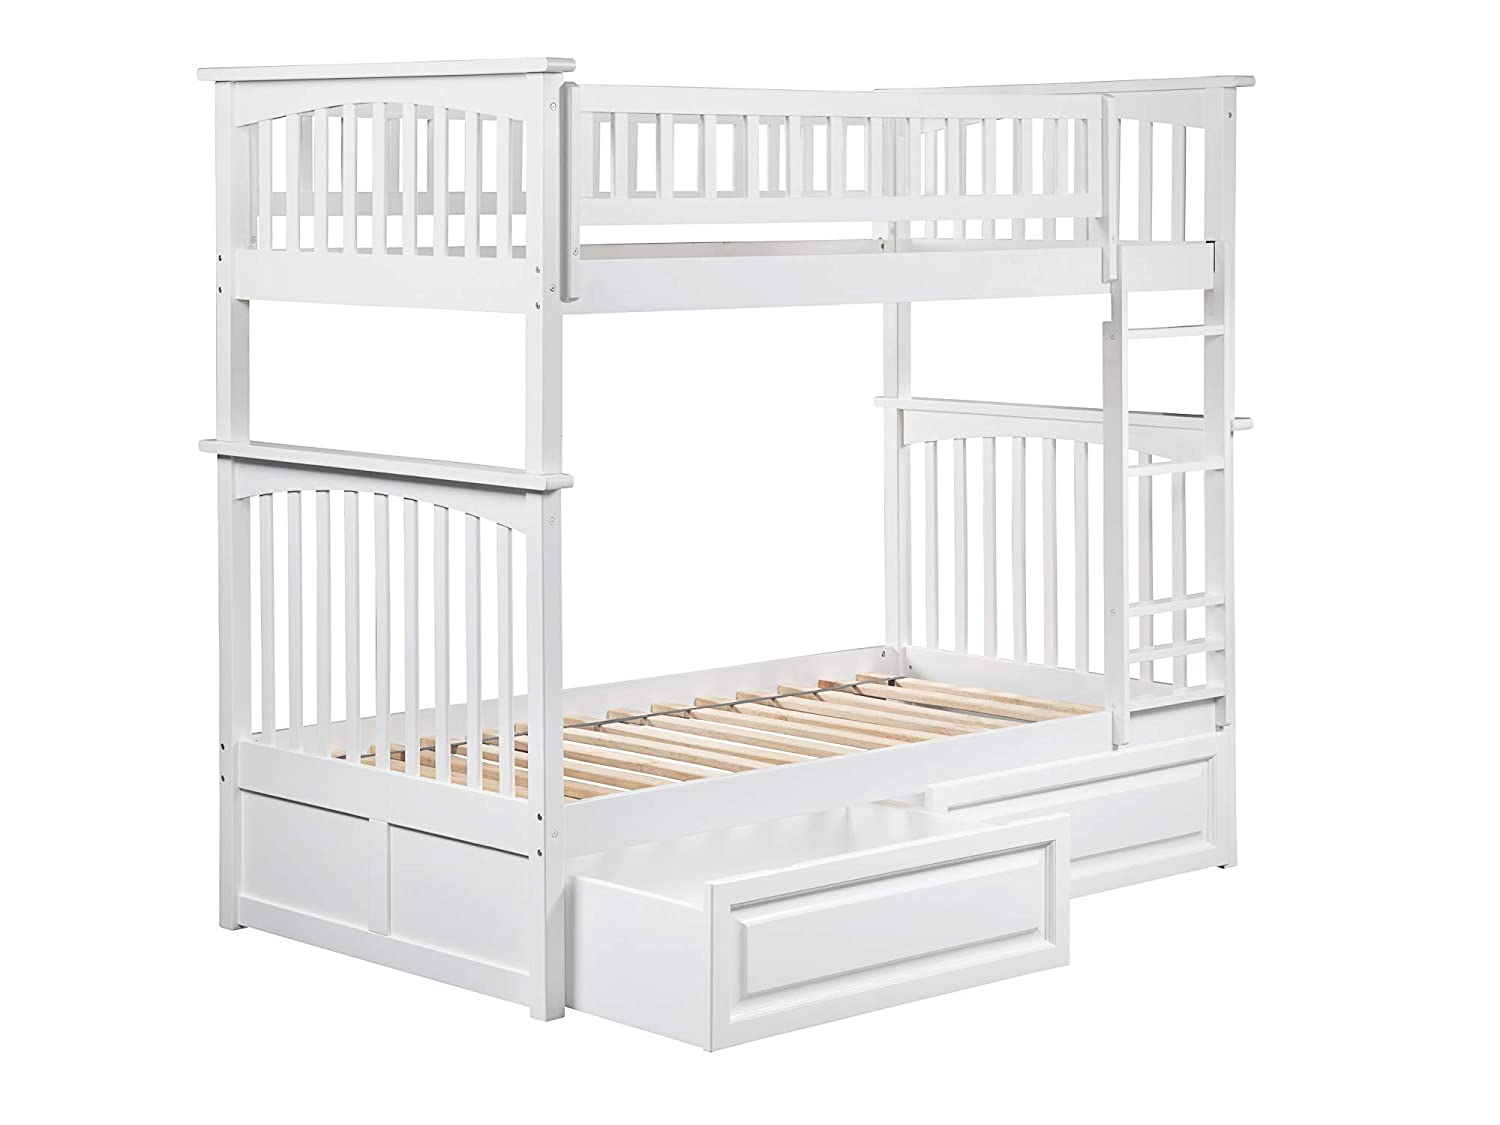 Atlantic Furniture Columbia Bunk Bed with 2 Raised Panel Bed Drawers, Twin Twin, White